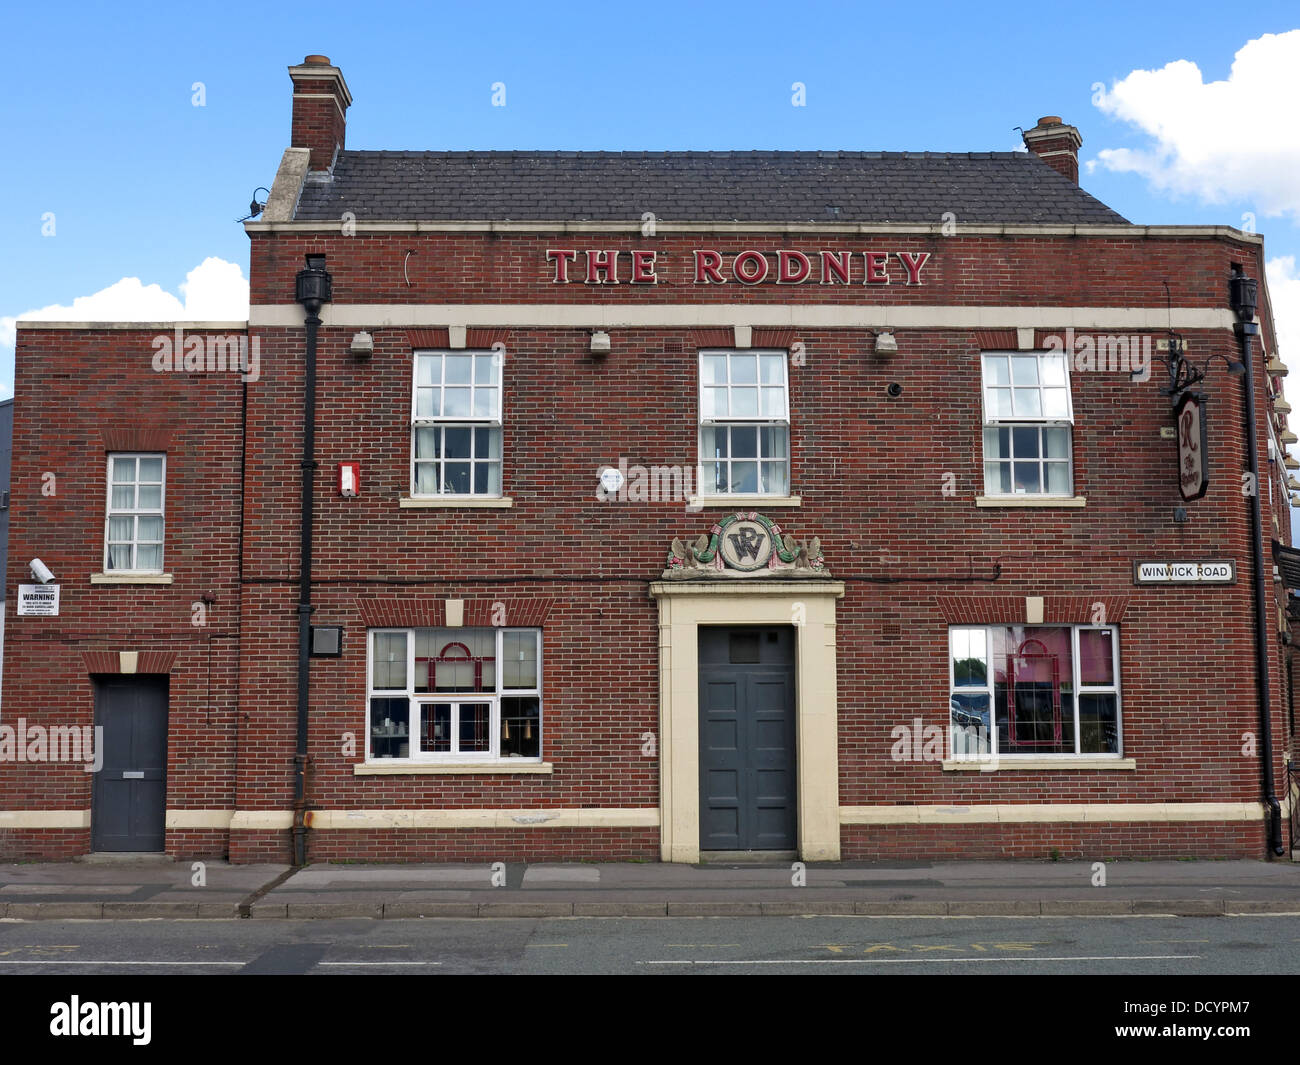 The Rodney, Lord Rodney Pub, 67 Winwick Rd, Warrington, Cheshire, North West England, WA2 7DH - Stock Image